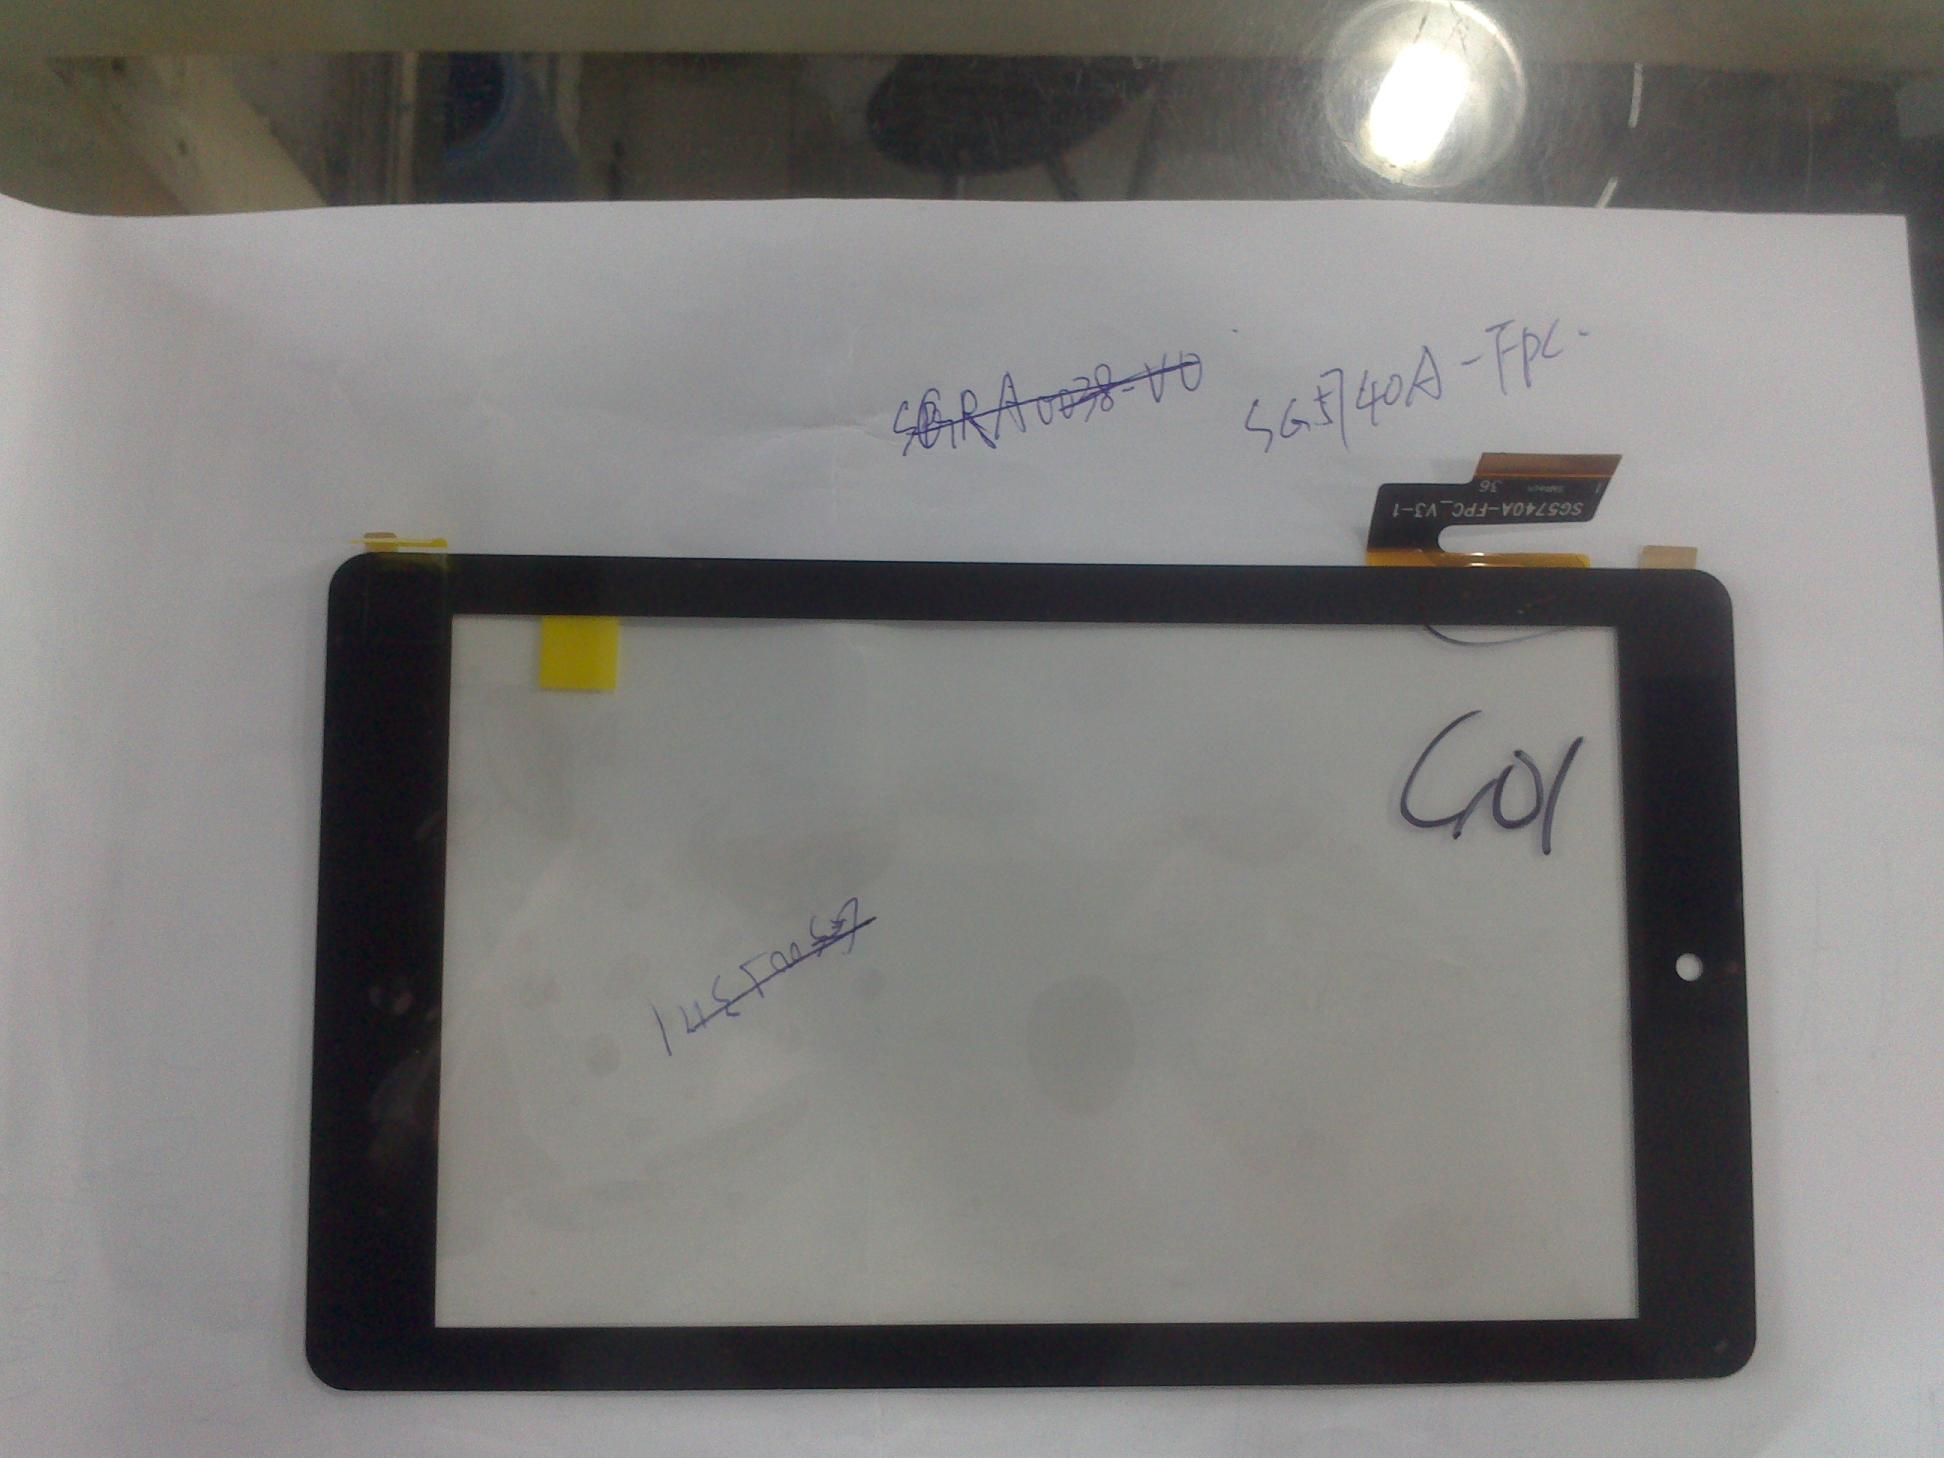 Запчасти для мобильных телефонов 7 inch new handwriting Tablet capacitive touch screen screen screen number is sg5740a/fpc_v3/1  SG5740A-FPC_V3-1 отсутствует книжное обозрение с приложением pro 03 2013